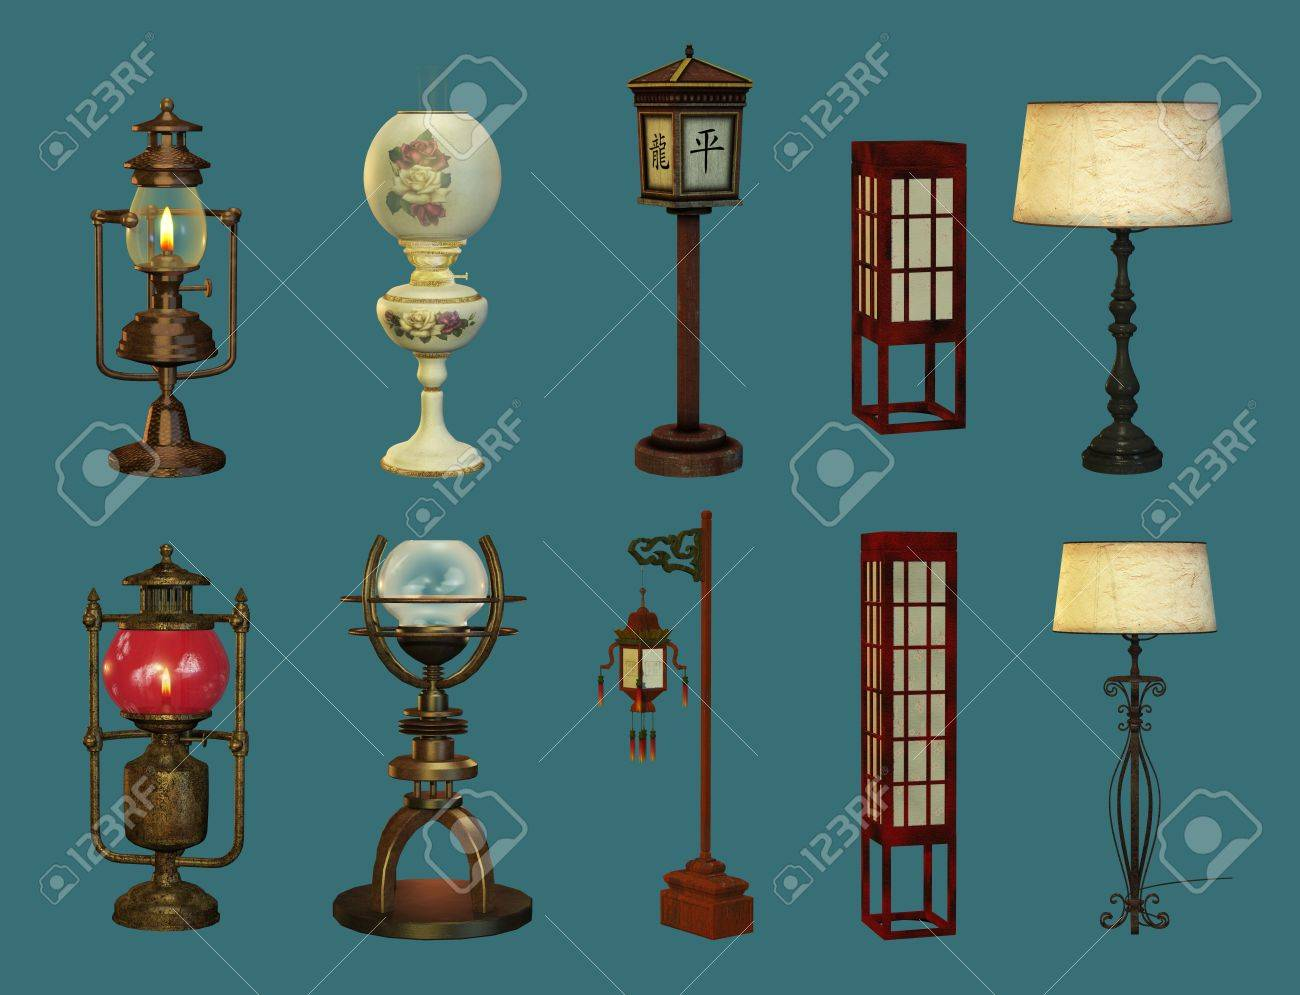 Eight L s Two Lanterns Image   Photo   Bigstock further 38 best Graphics images on Pinterest   Font logo  Fonts and Mockup likewise Gallery together with Eight L s Two Lanterns Image   Photo   Bigstock in addition  also Eight Different L s And Two Different Lanterns In Retro Or further Gallery as well 38 best Graphics images on Pinterest   Font logo  Fonts and Mockup moreover  likewise Gallery likewise Eight Different L s And Two Different Lanterns In Retro Or. on 7832x6000